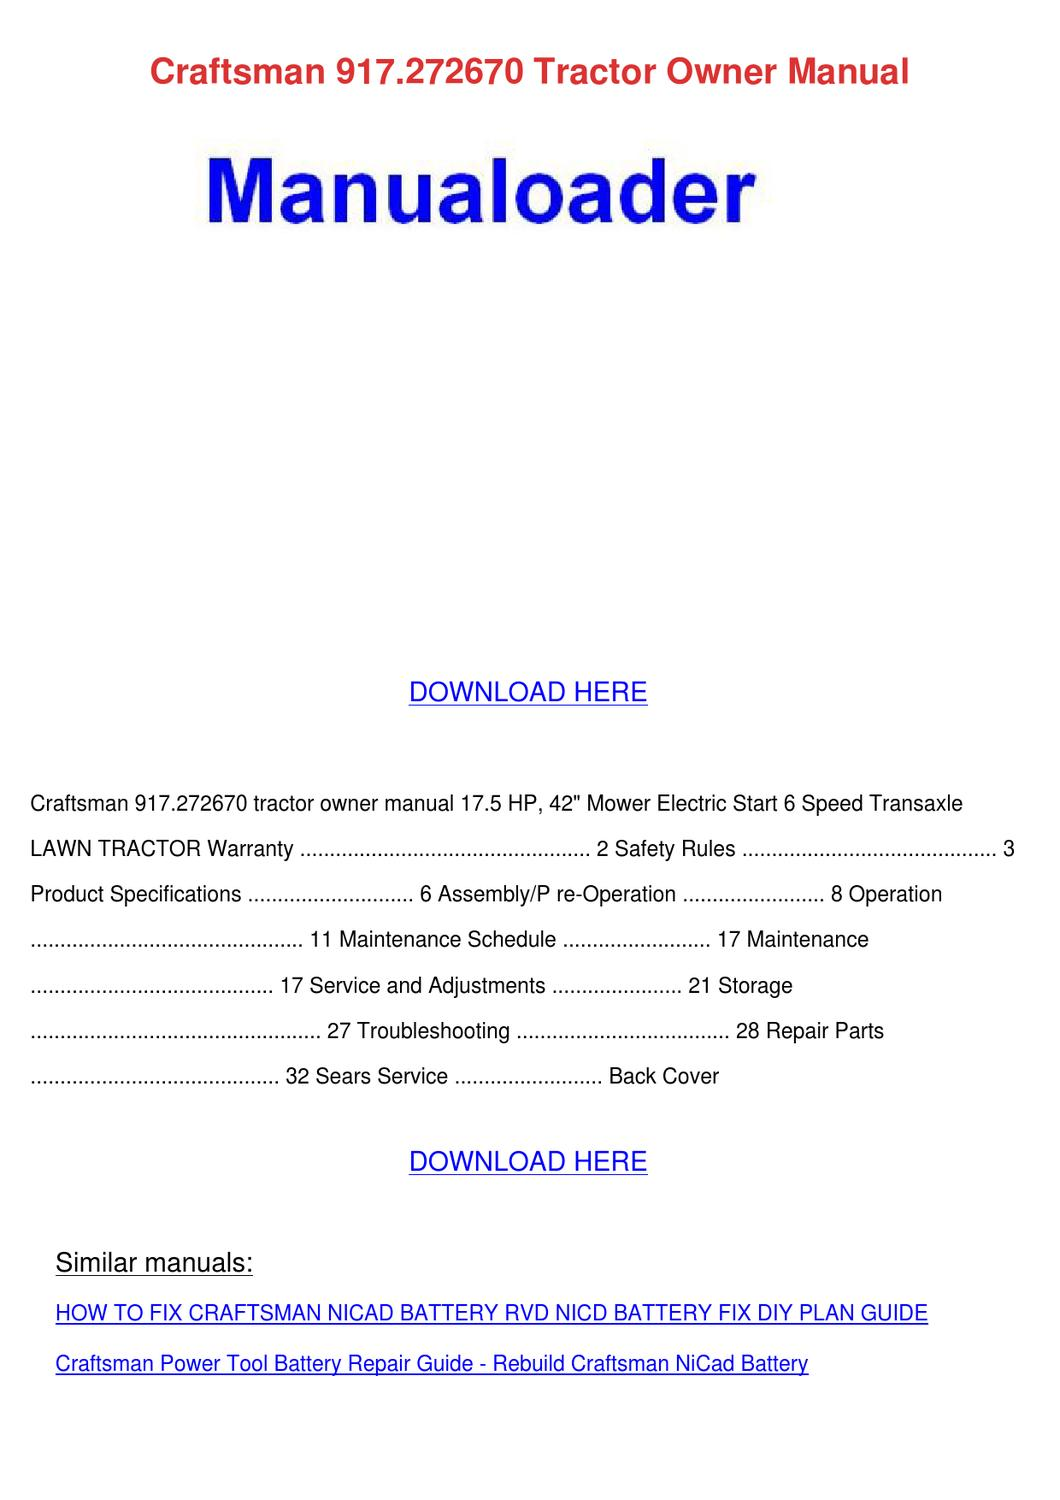 Craftsman 917272670 Tractor Owner Manual by Tennie Simone - issuu